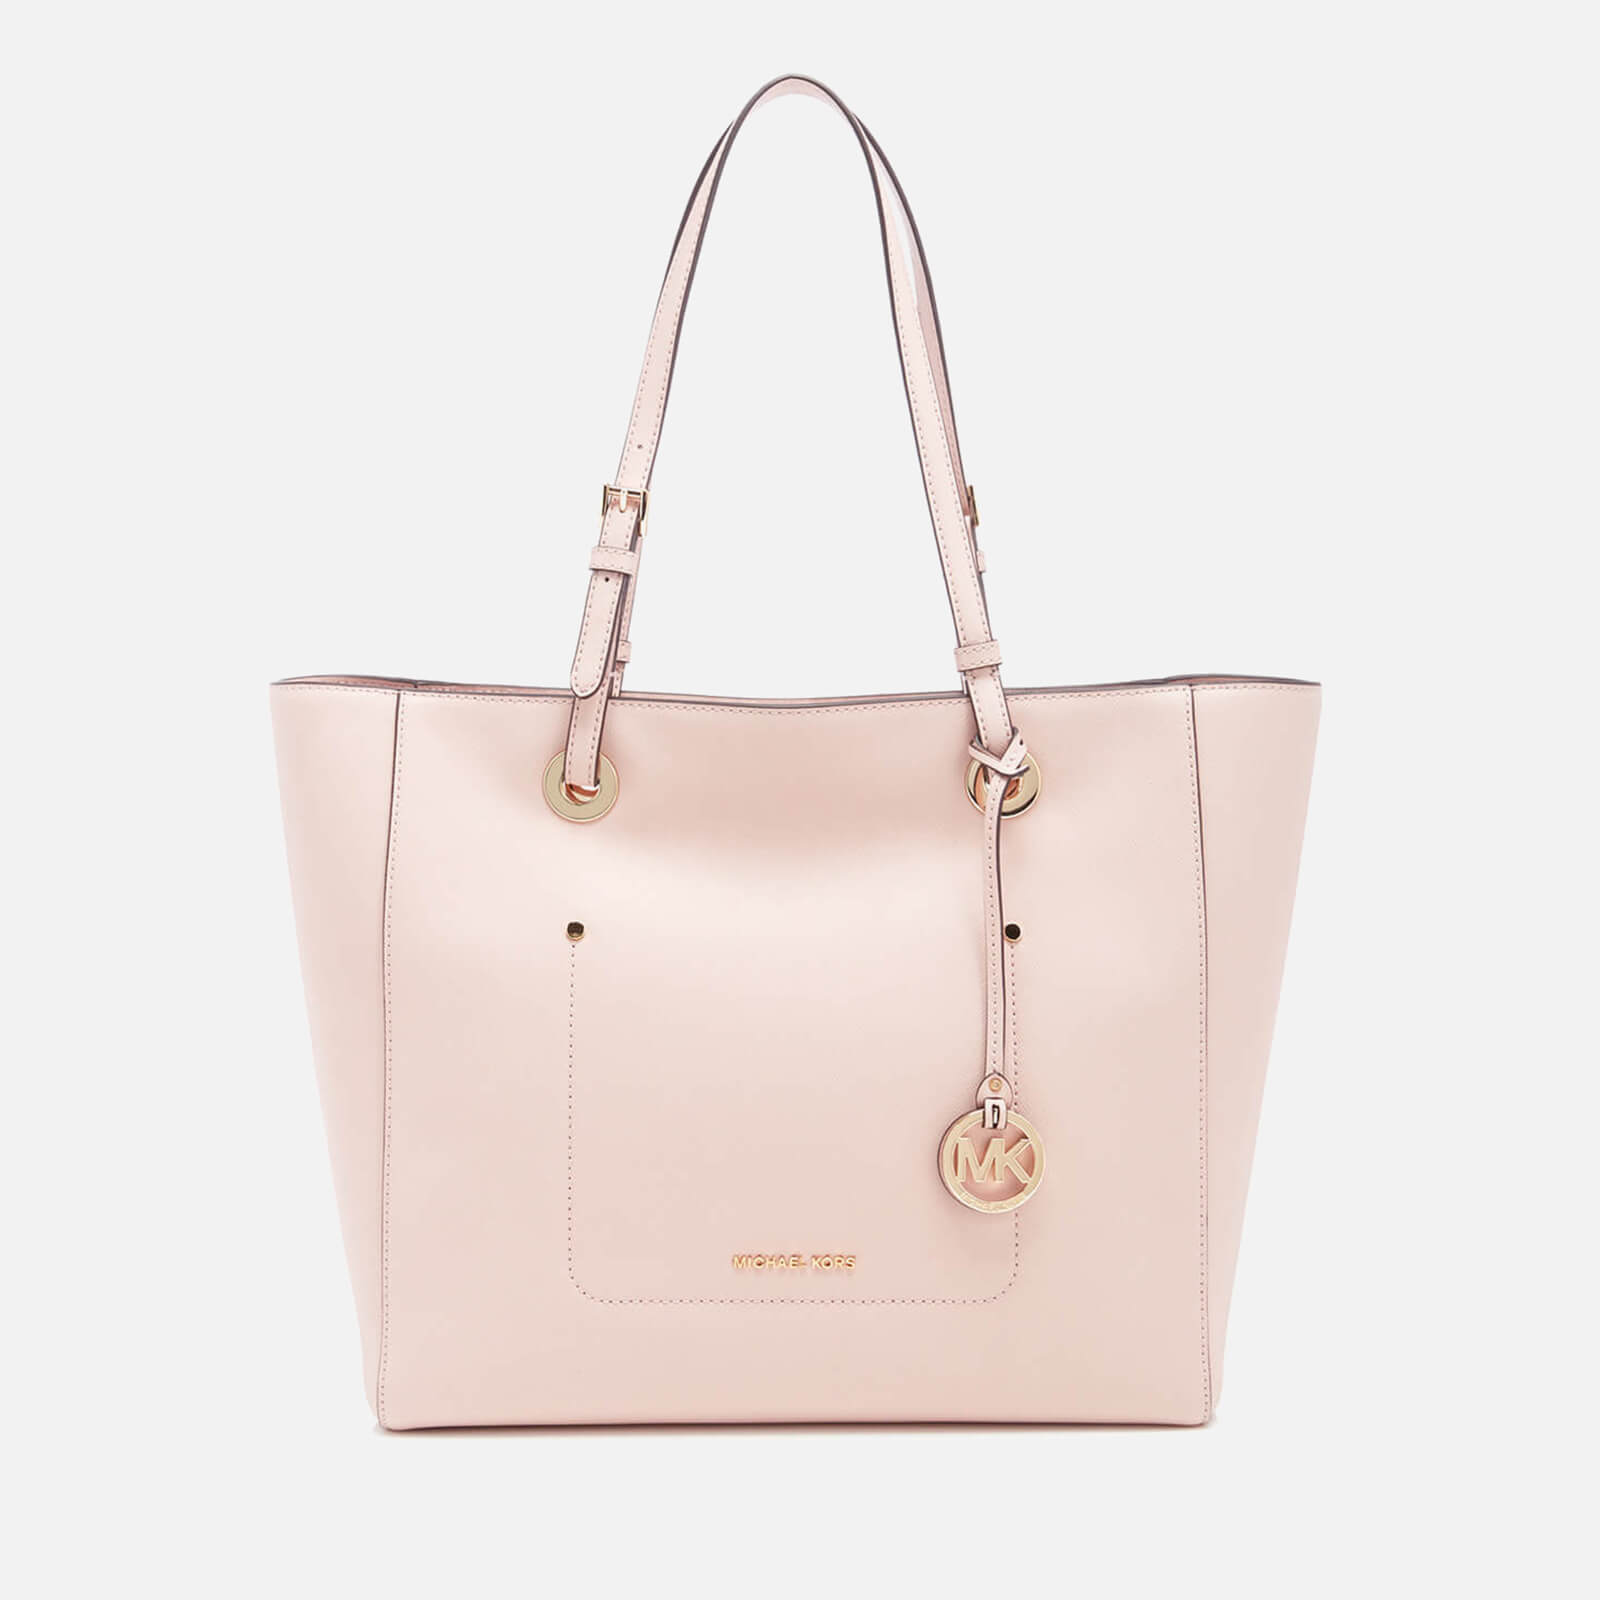 81c46b62f6d0 MICHAEL MICHAEL KORS Women's Walsh Large East West Tote Bag - Soft Pink -  Free UK Delivery over £50